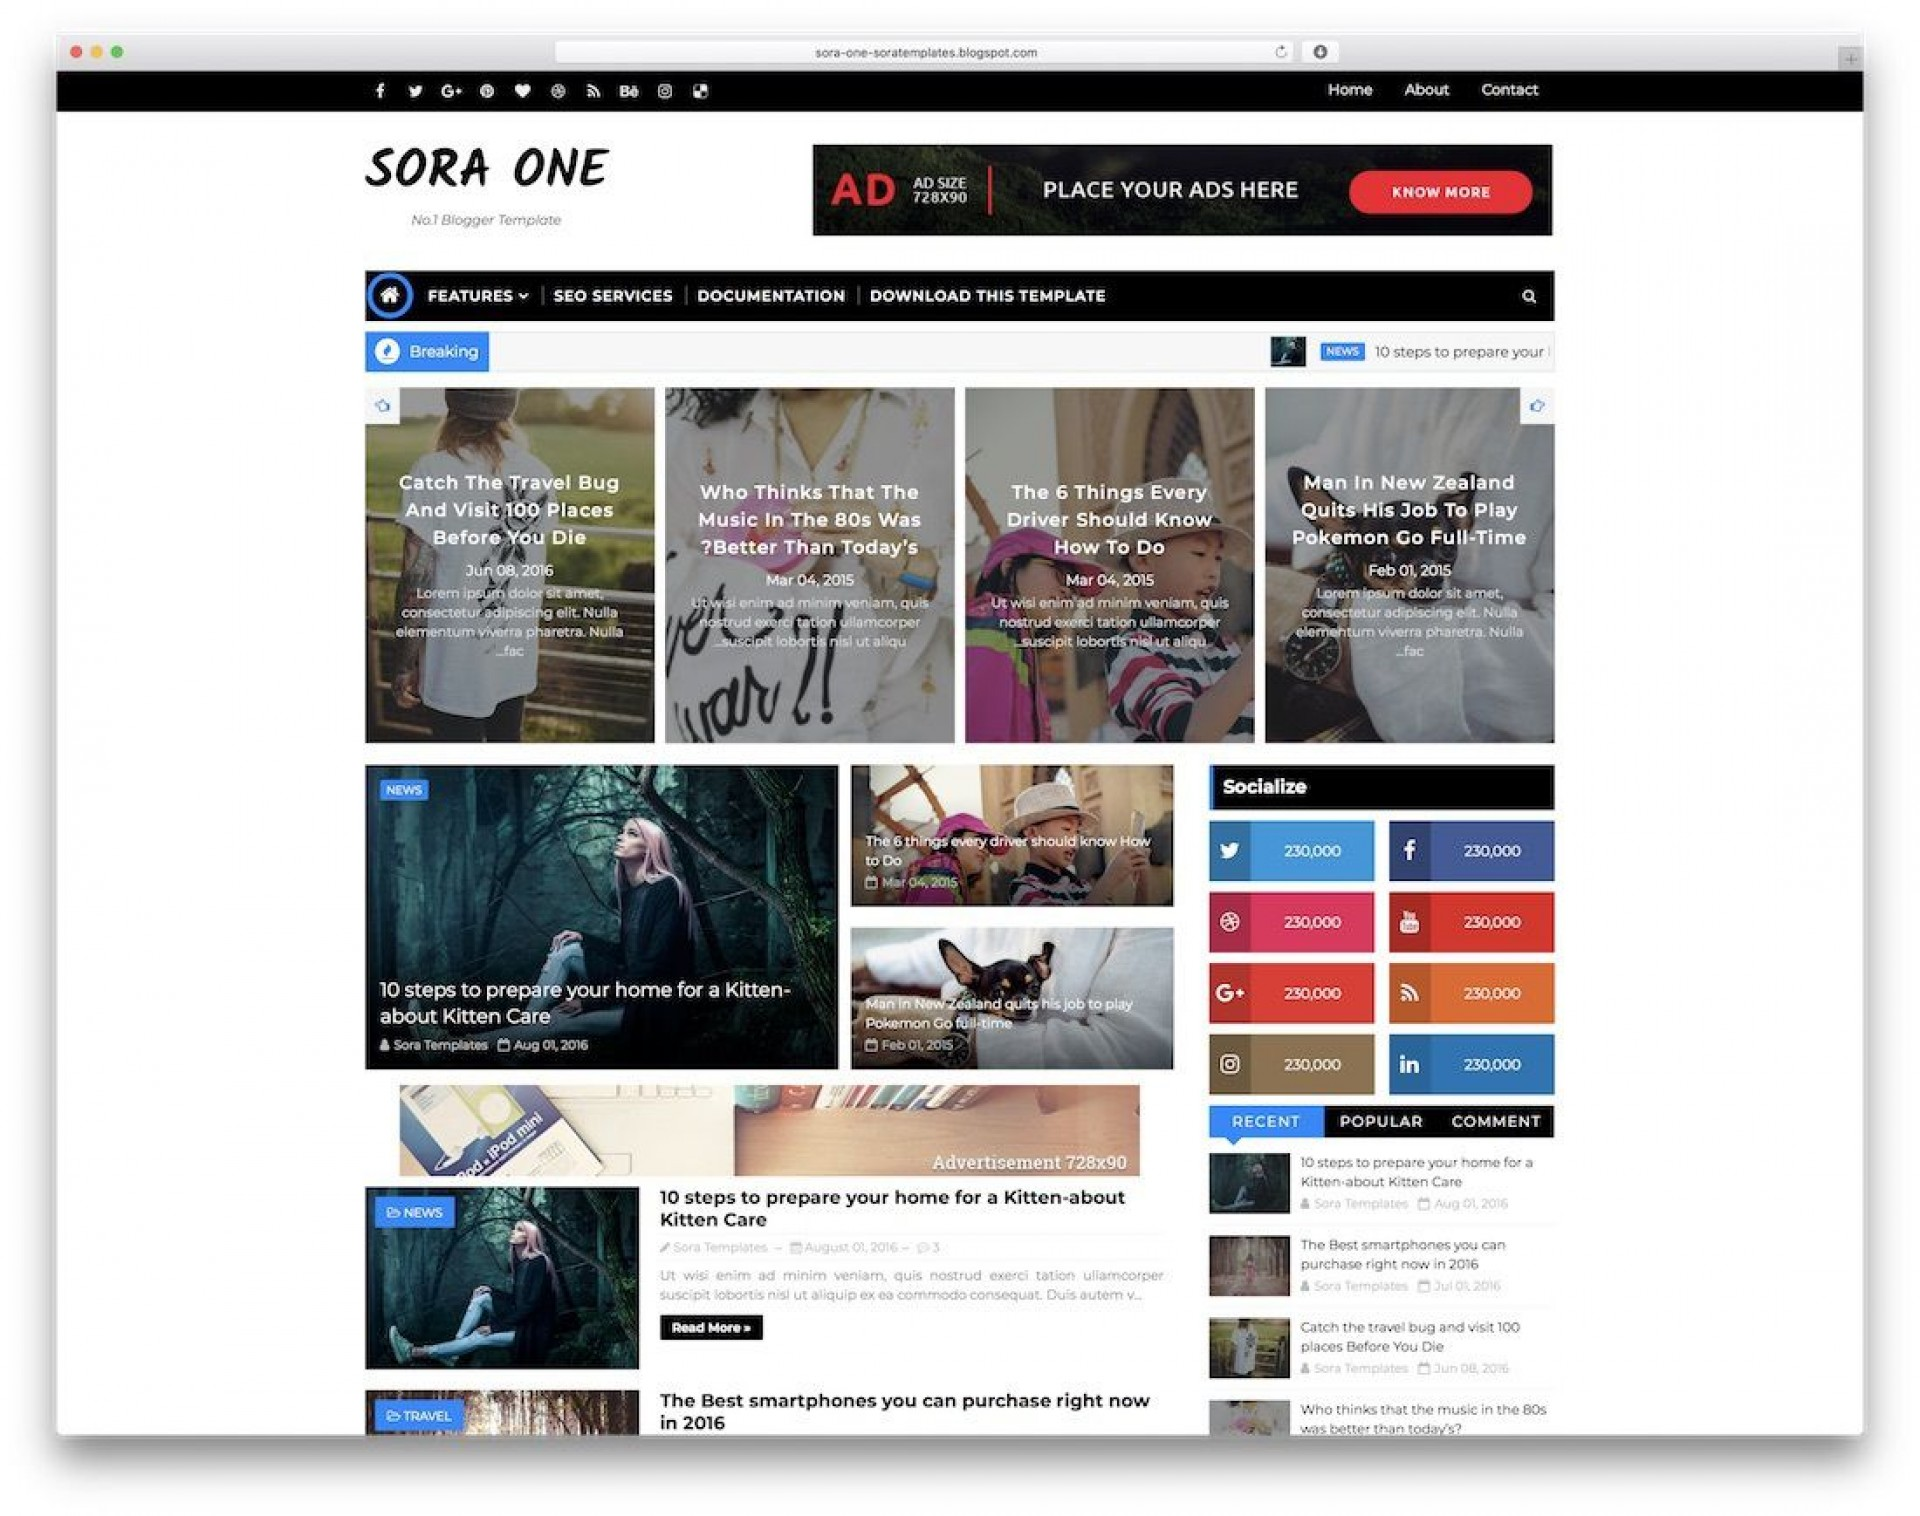 009 Best Free Responsive Blogger Template Image  2019 Top Mobile Friendly1920